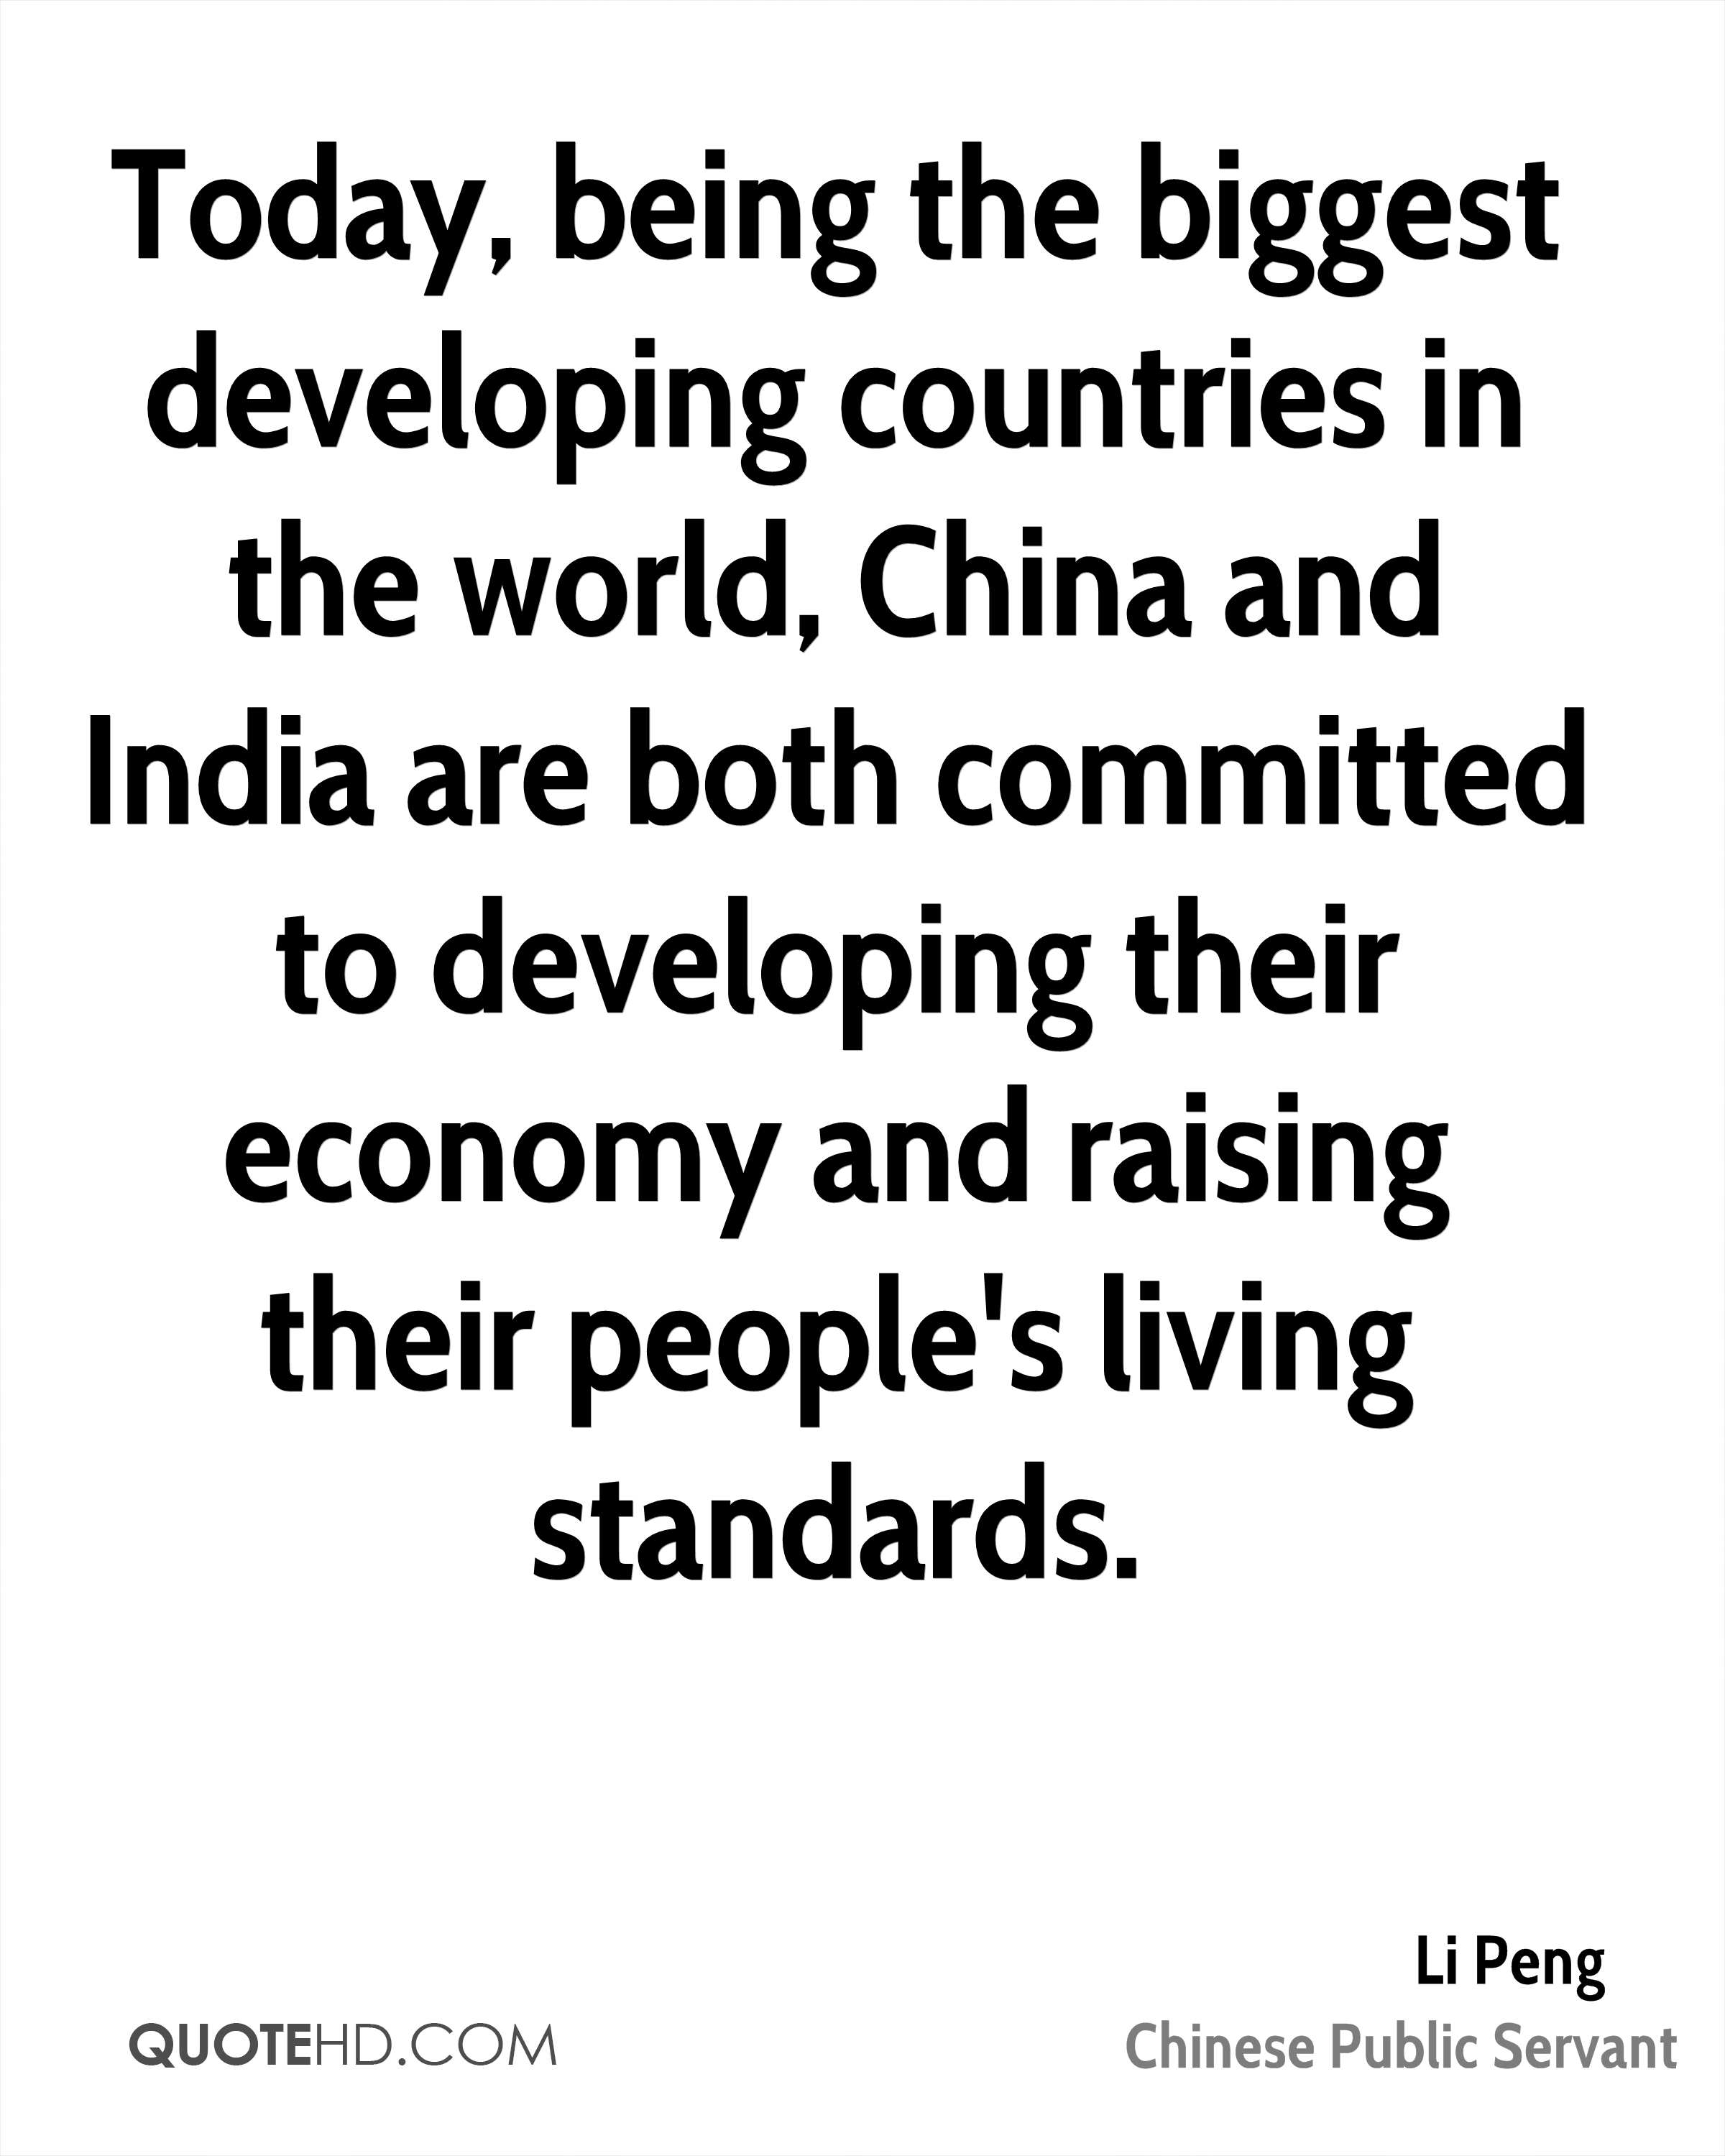 Today, being the biggest developing countries in the world, China and India are both committed to developing their economy and raising their people's living standards.